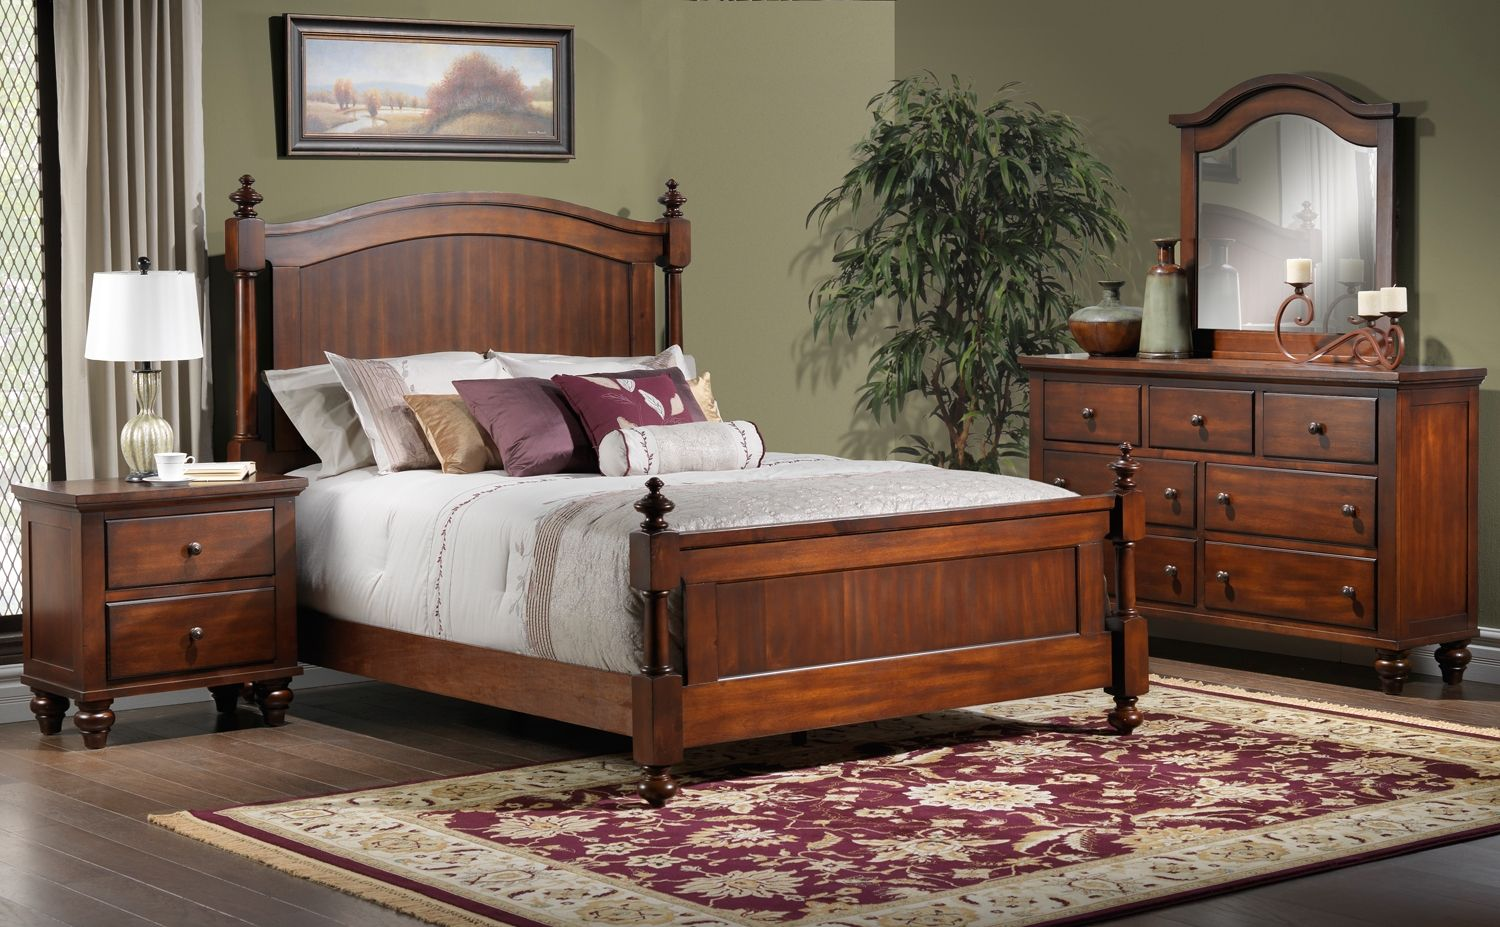 Bedroom Furniture Palisade 5 Pc. Queen Bedroom Set